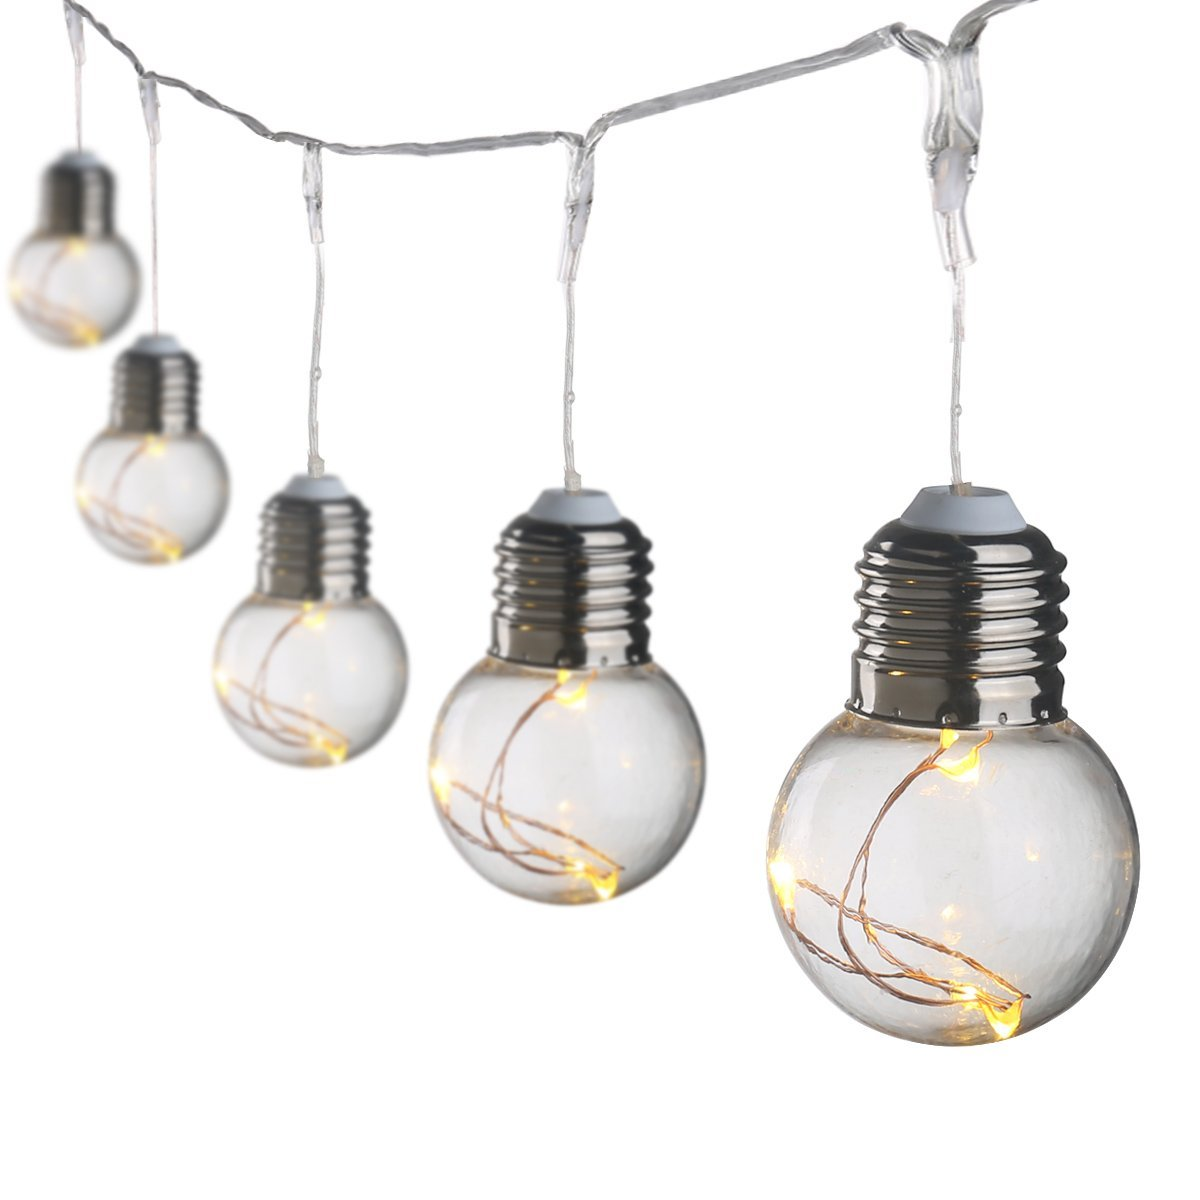 hight resolution of 19 69ft led globe copper wire string lights warm white g45 25 leds ball string light bulbs for christmas decoration ul listed